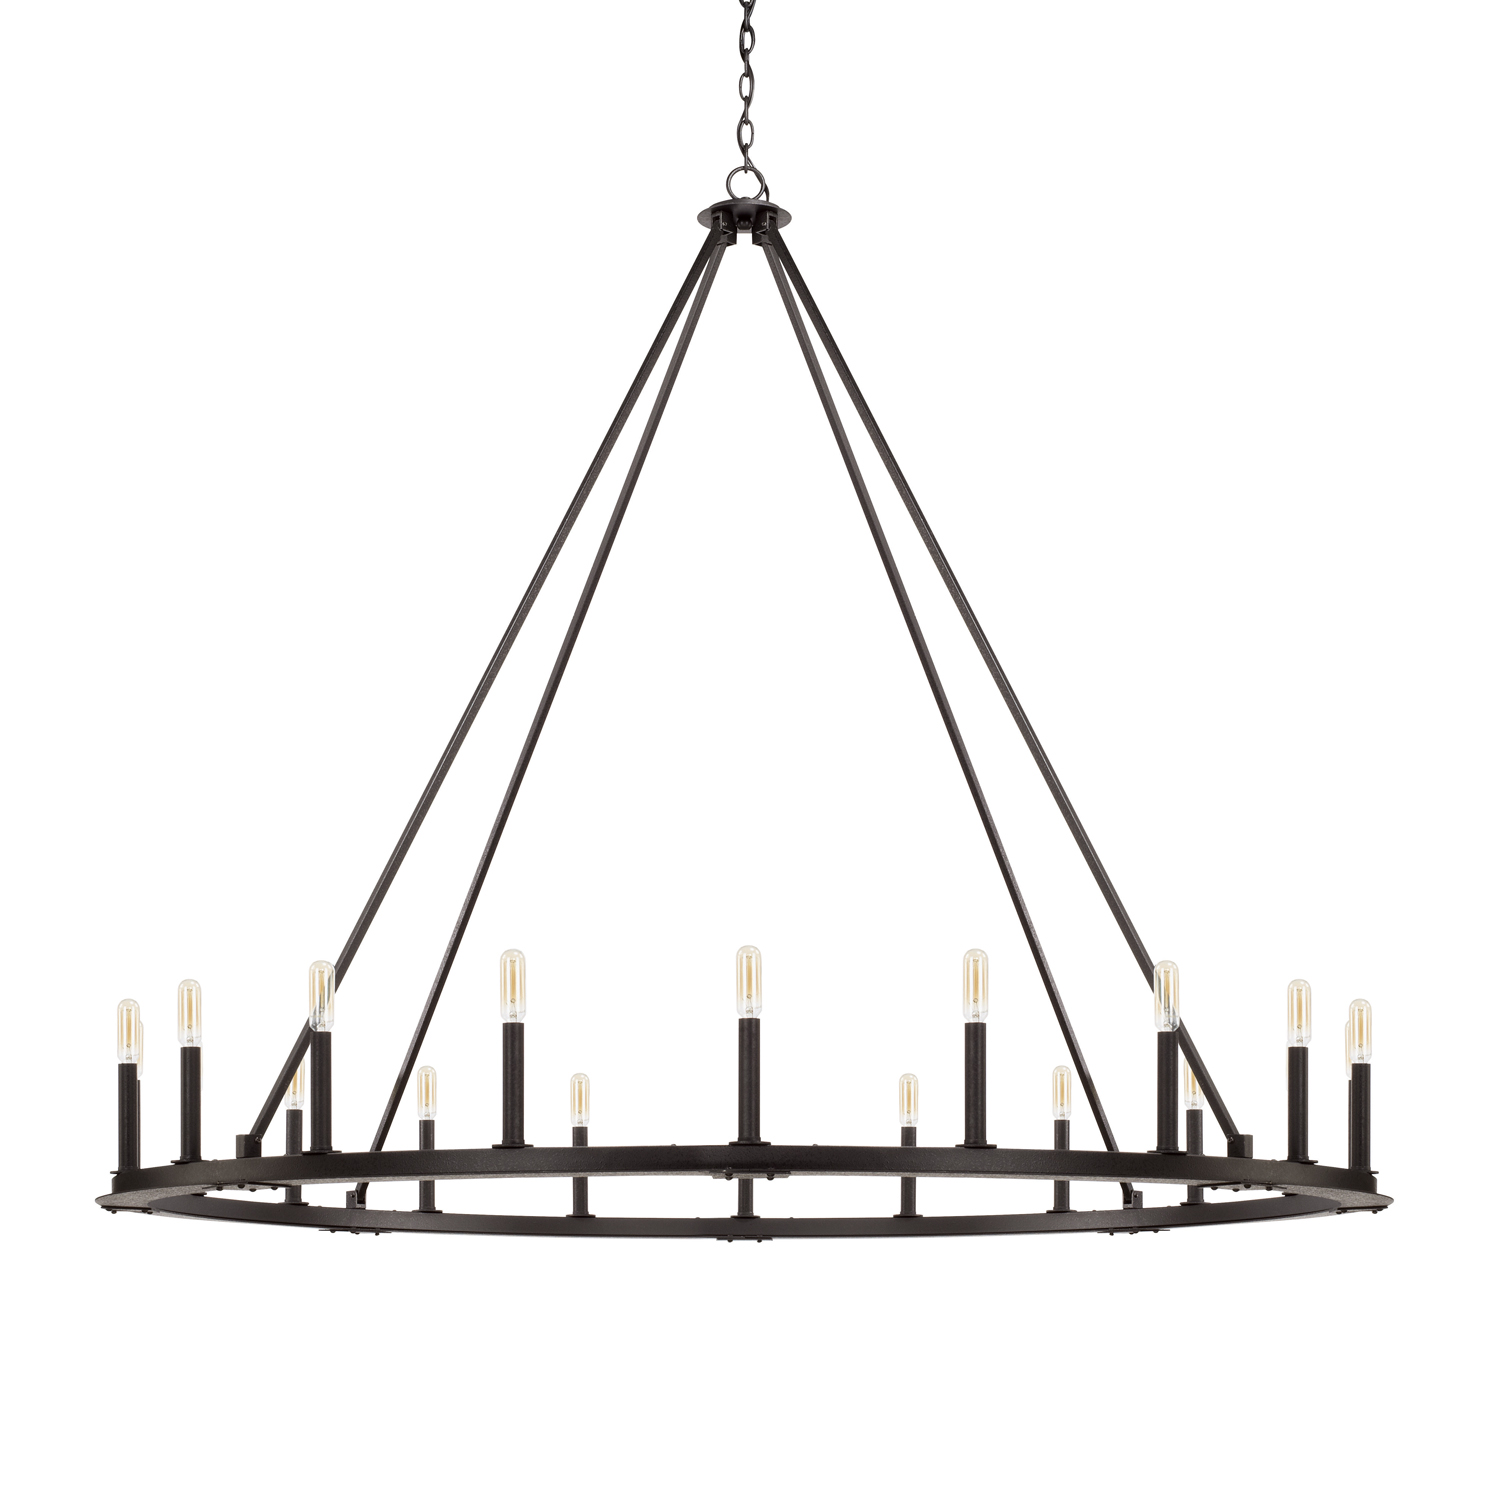 20 Light Chandelier from the Pearson collection by Capital Lighting 4913BI